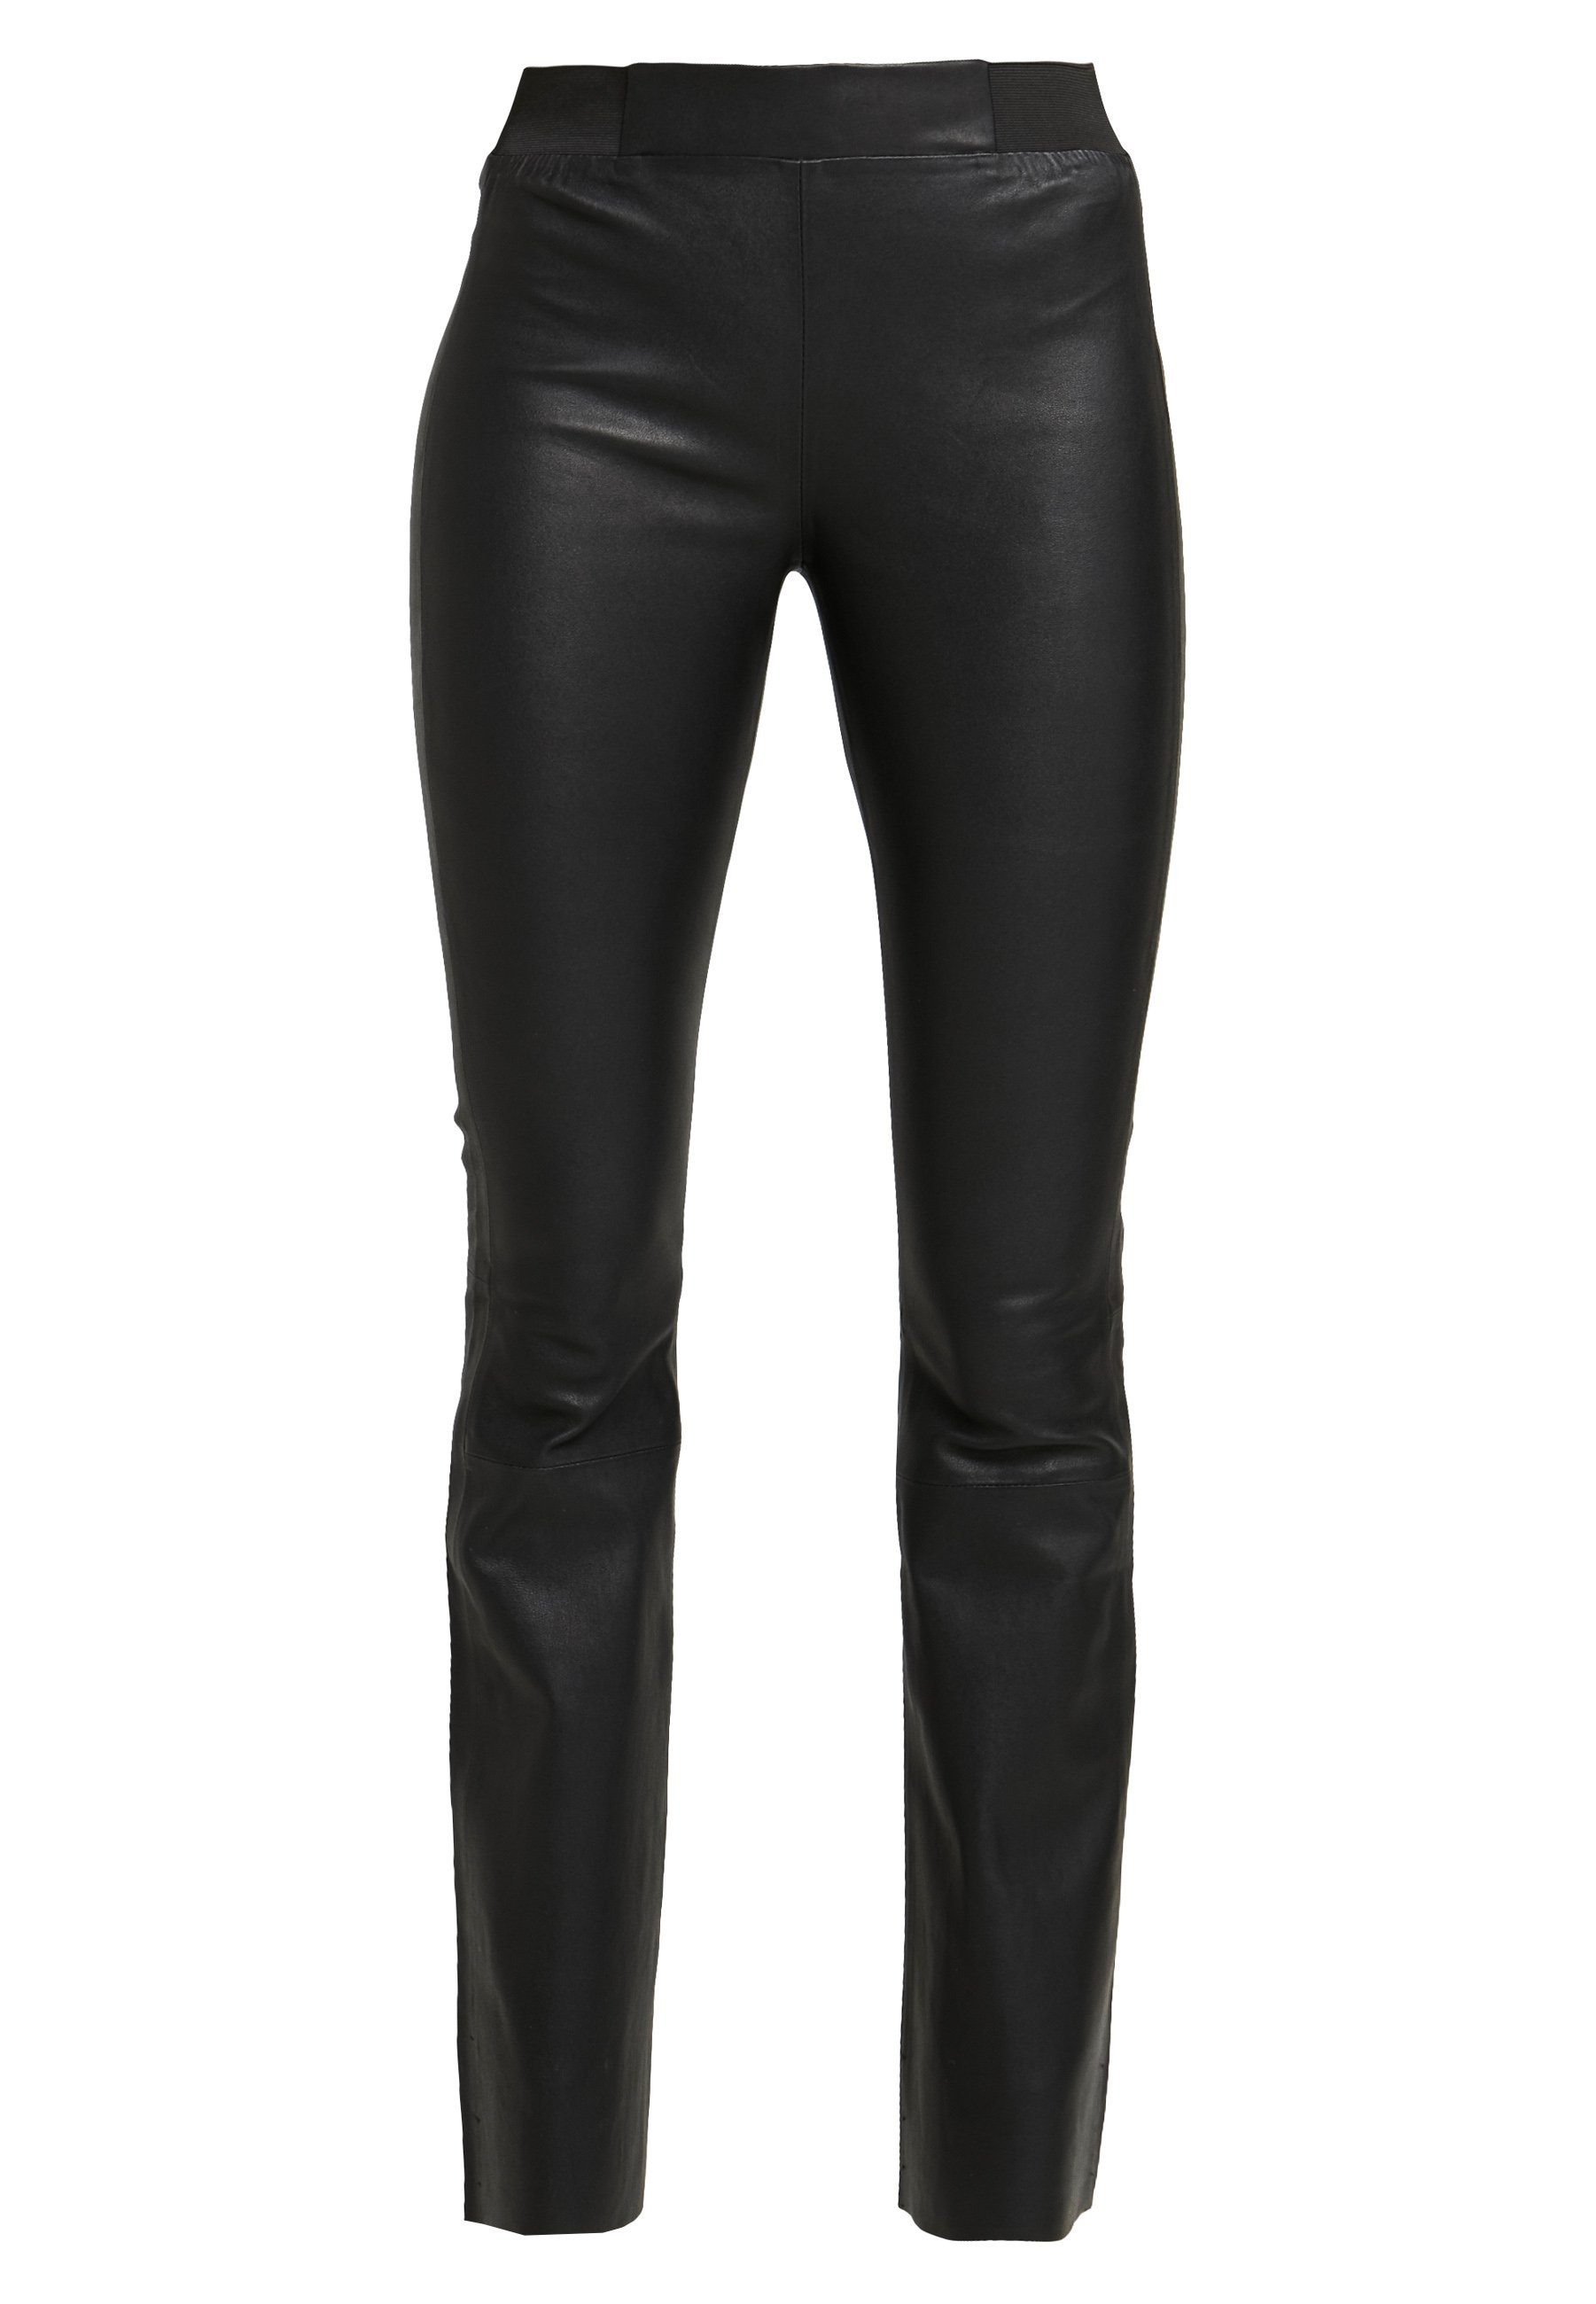 Dranella Fruna Pants Thea Fit - Leggings Hosen Black Friday